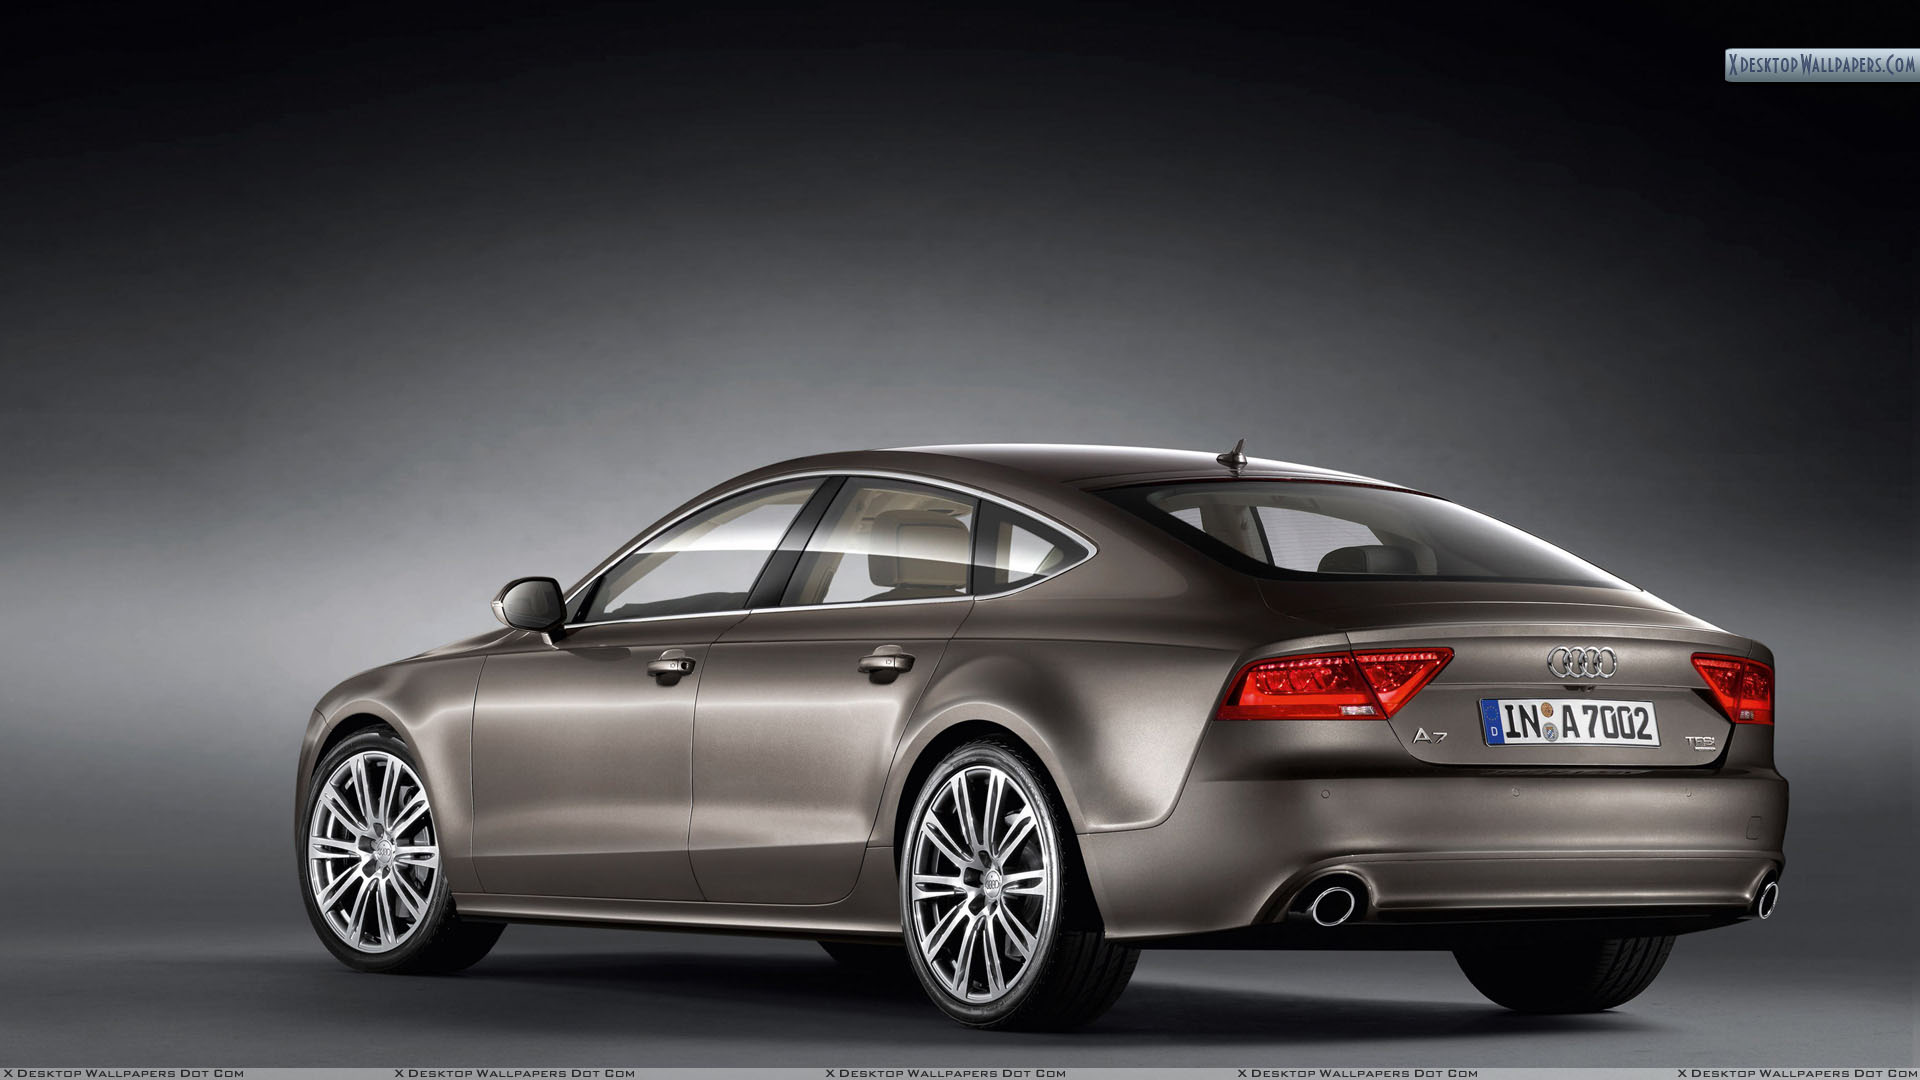 Audi A7 Wallpapers Photos Images In Hd